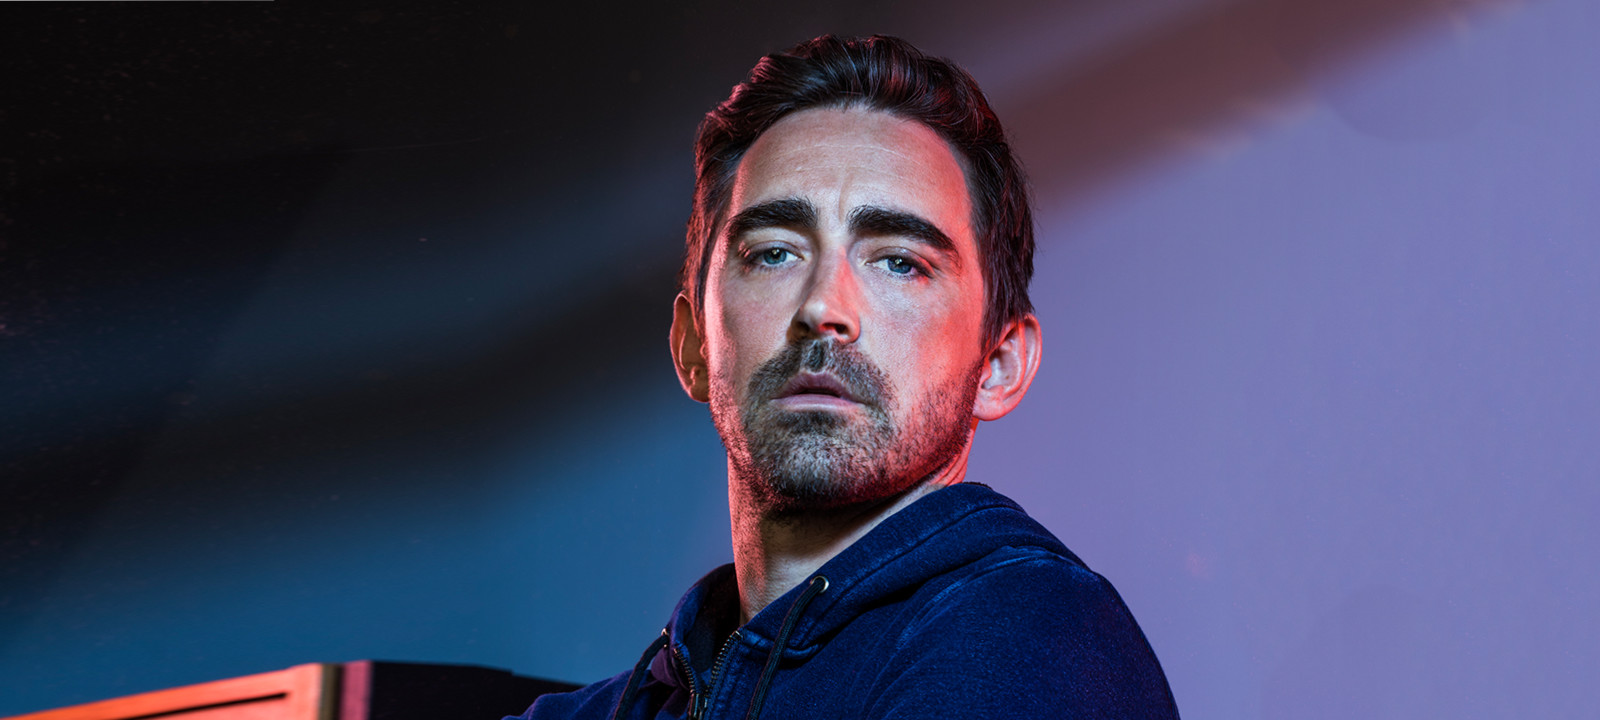 halt-and-catch-fire-episode-401-lee-pace-interview-800